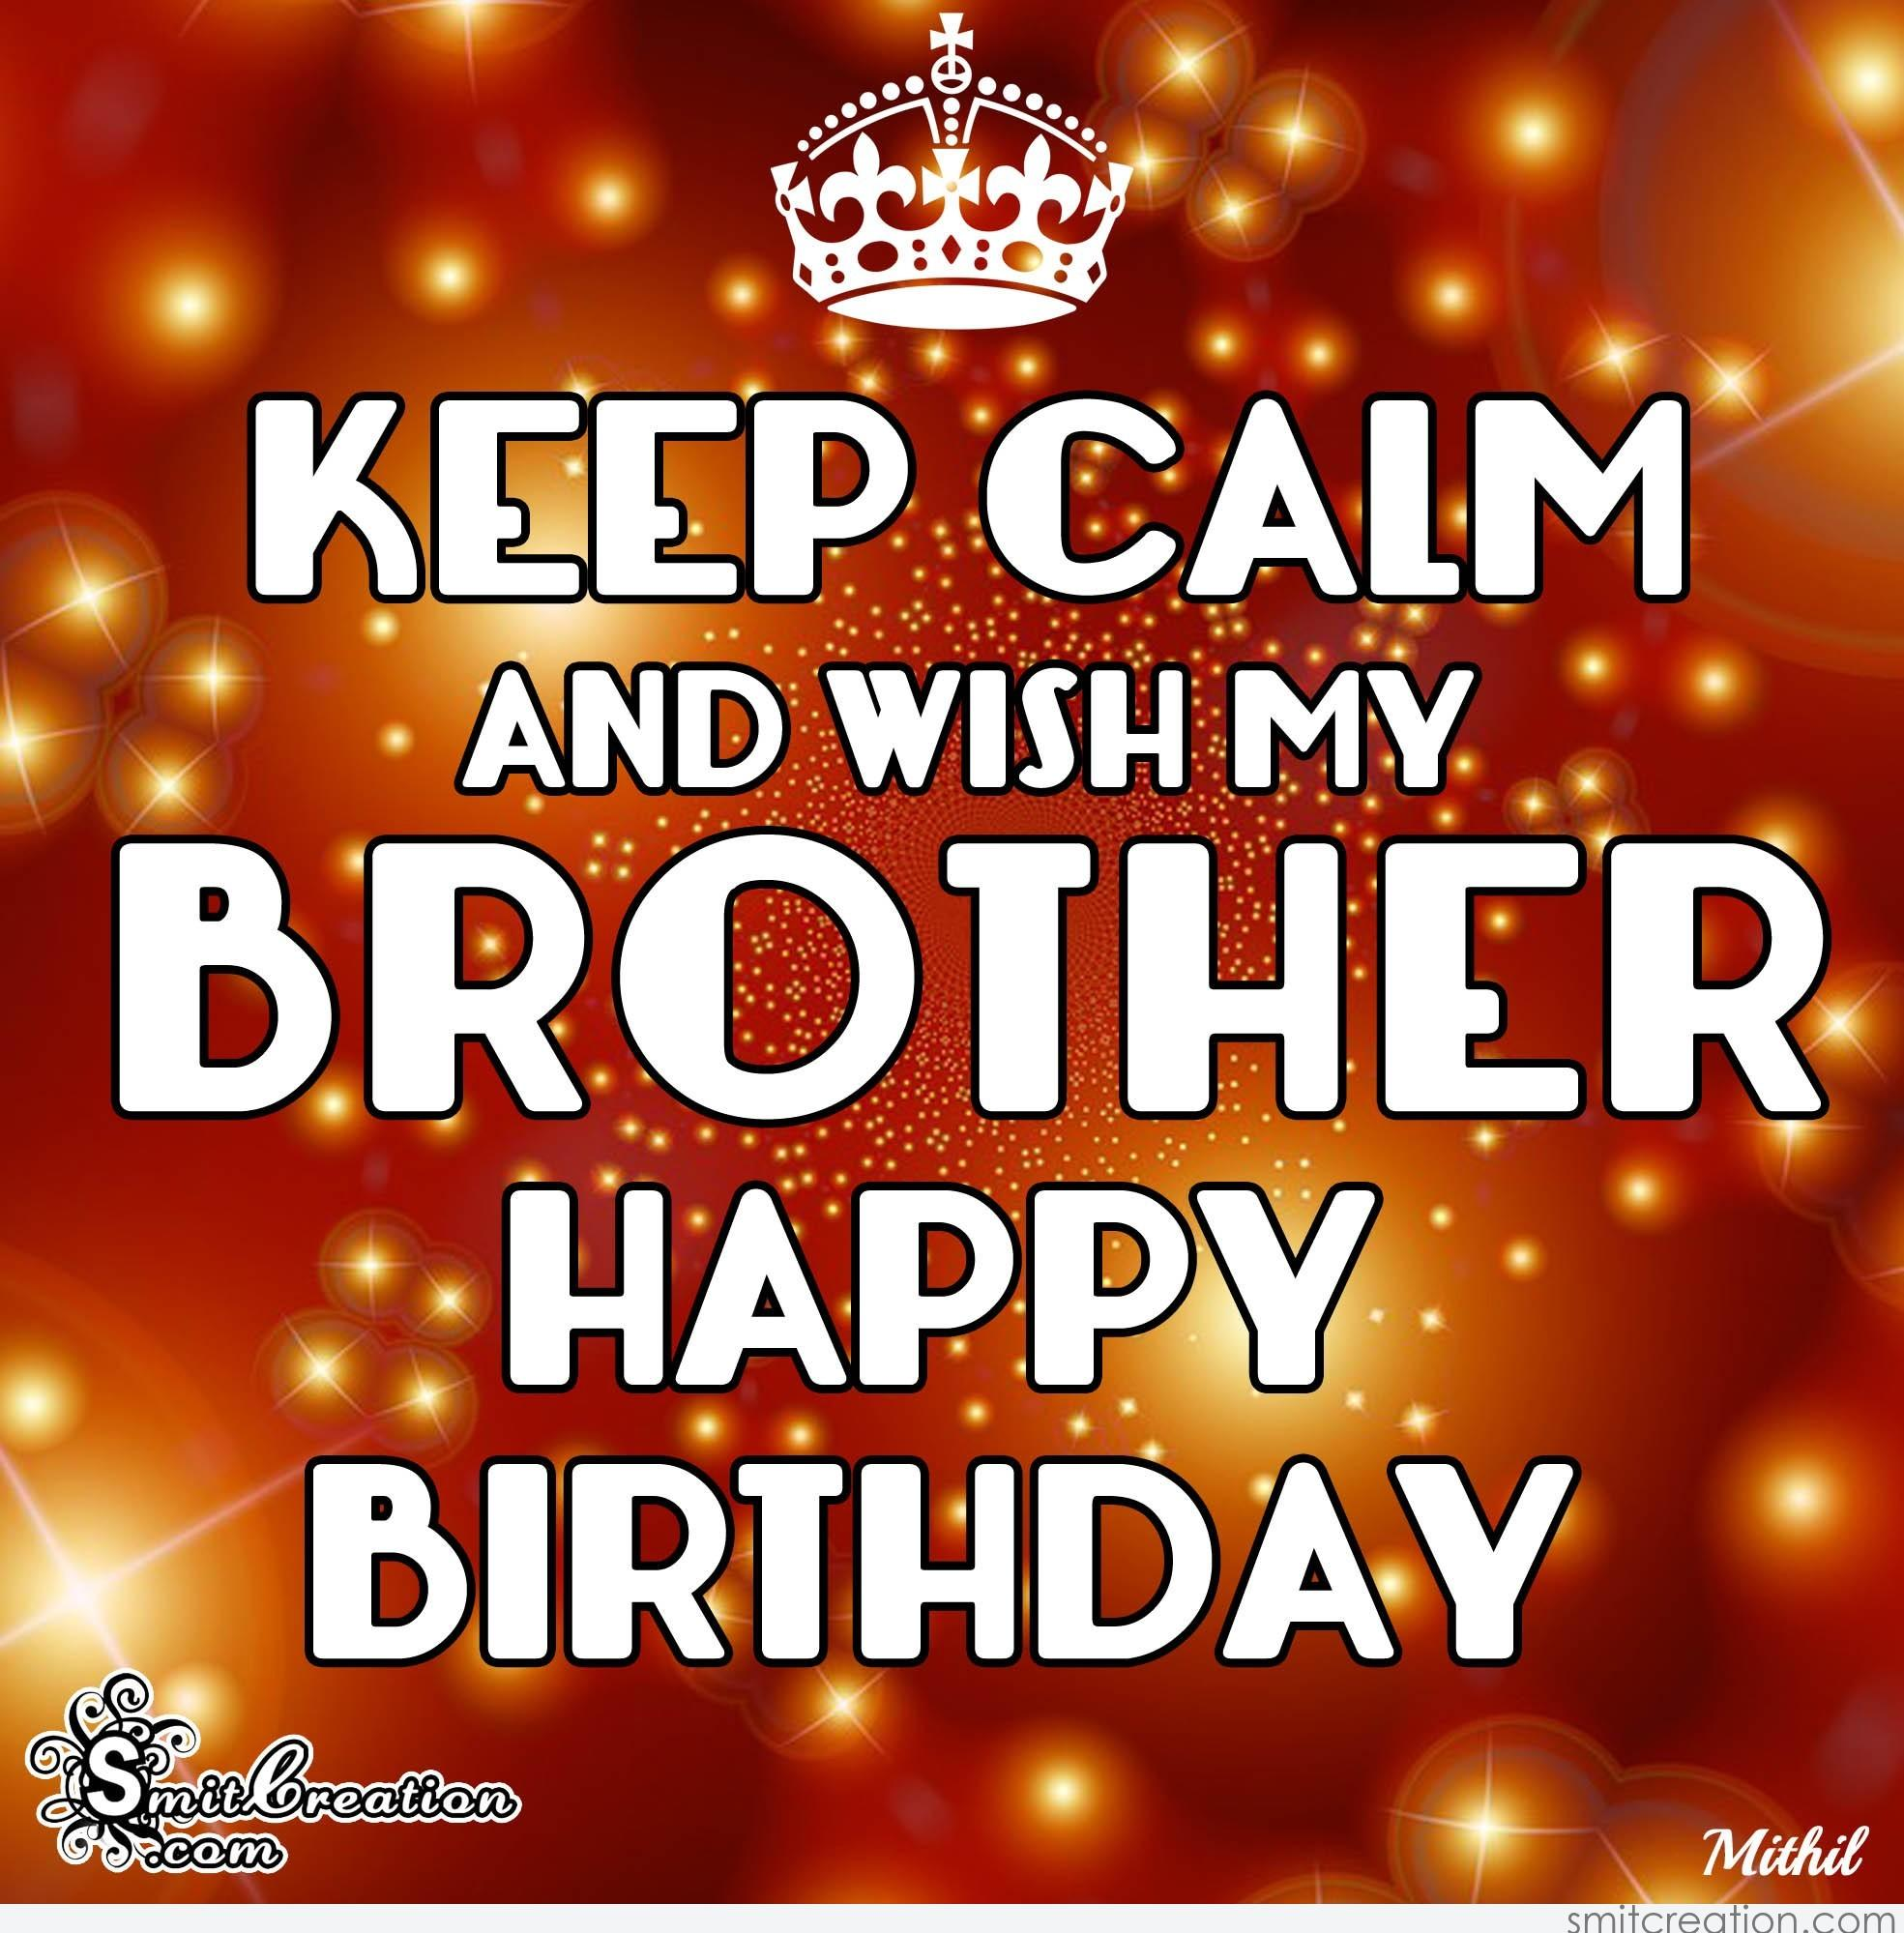 Birthday Wishes For Brother Pictures And Graphics